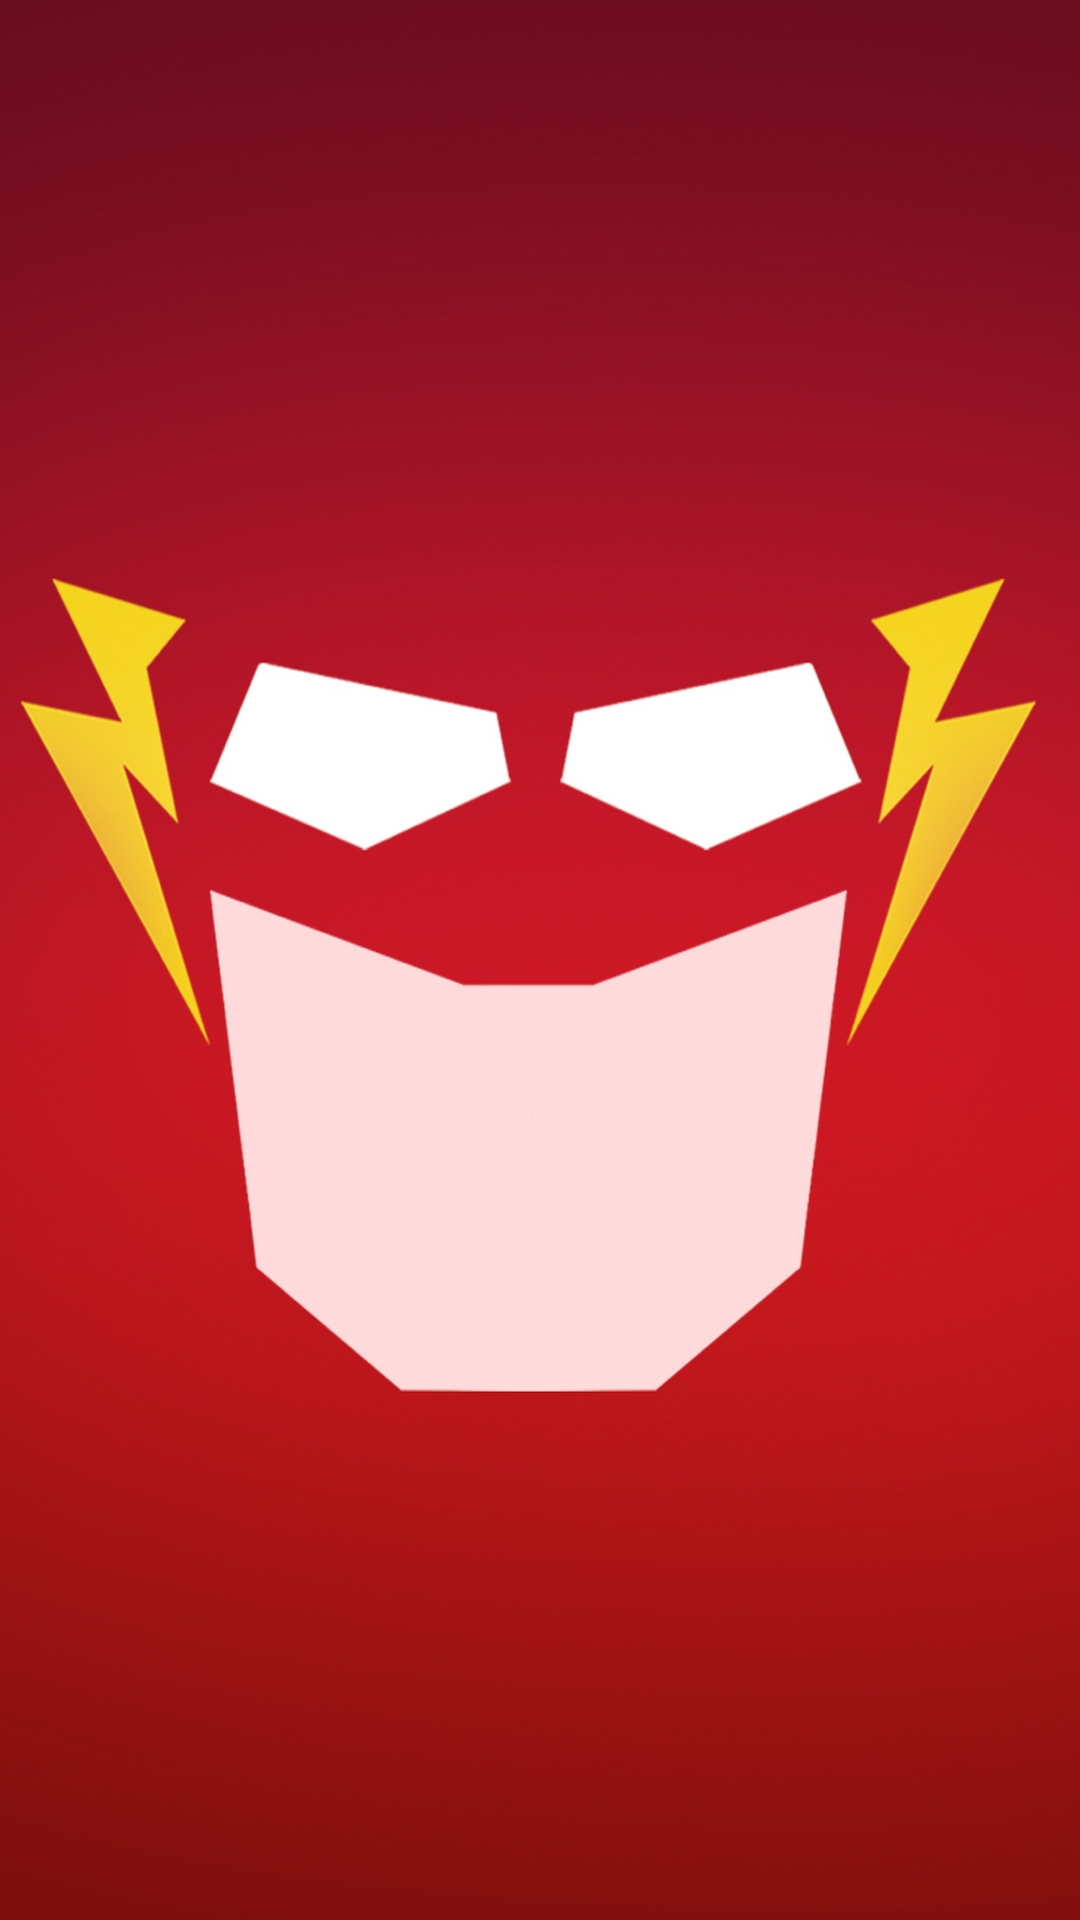 dc the flash wallpaper, dc superhero background